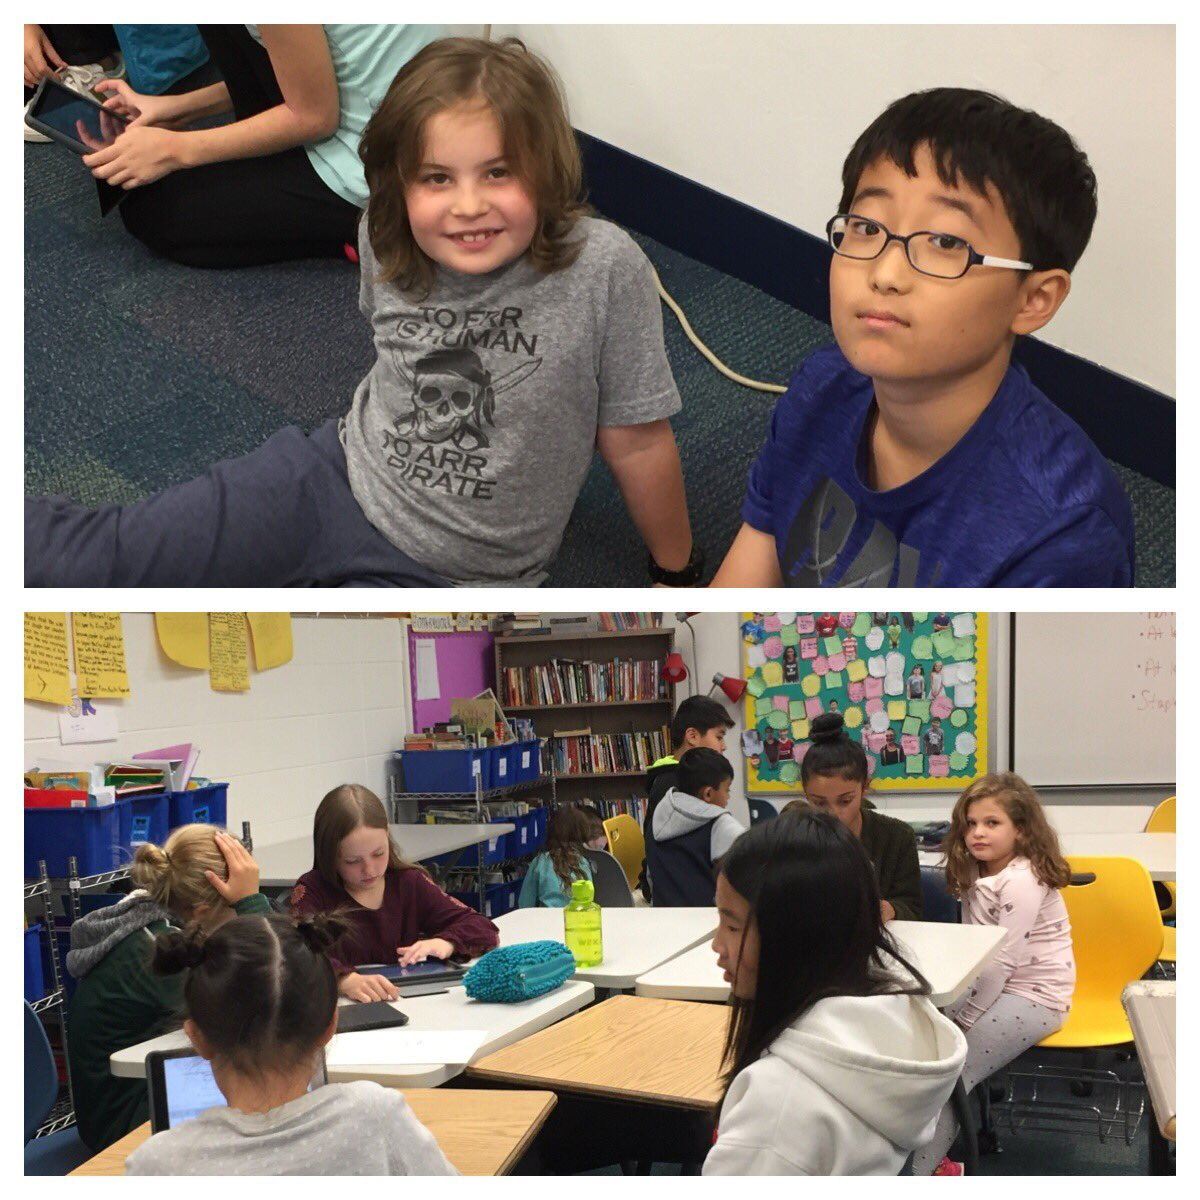 test Twitter Media - We had a great time meeting with our reading buddies! @Wescott5R #d30learns https://t.co/qIn1nWbZqM